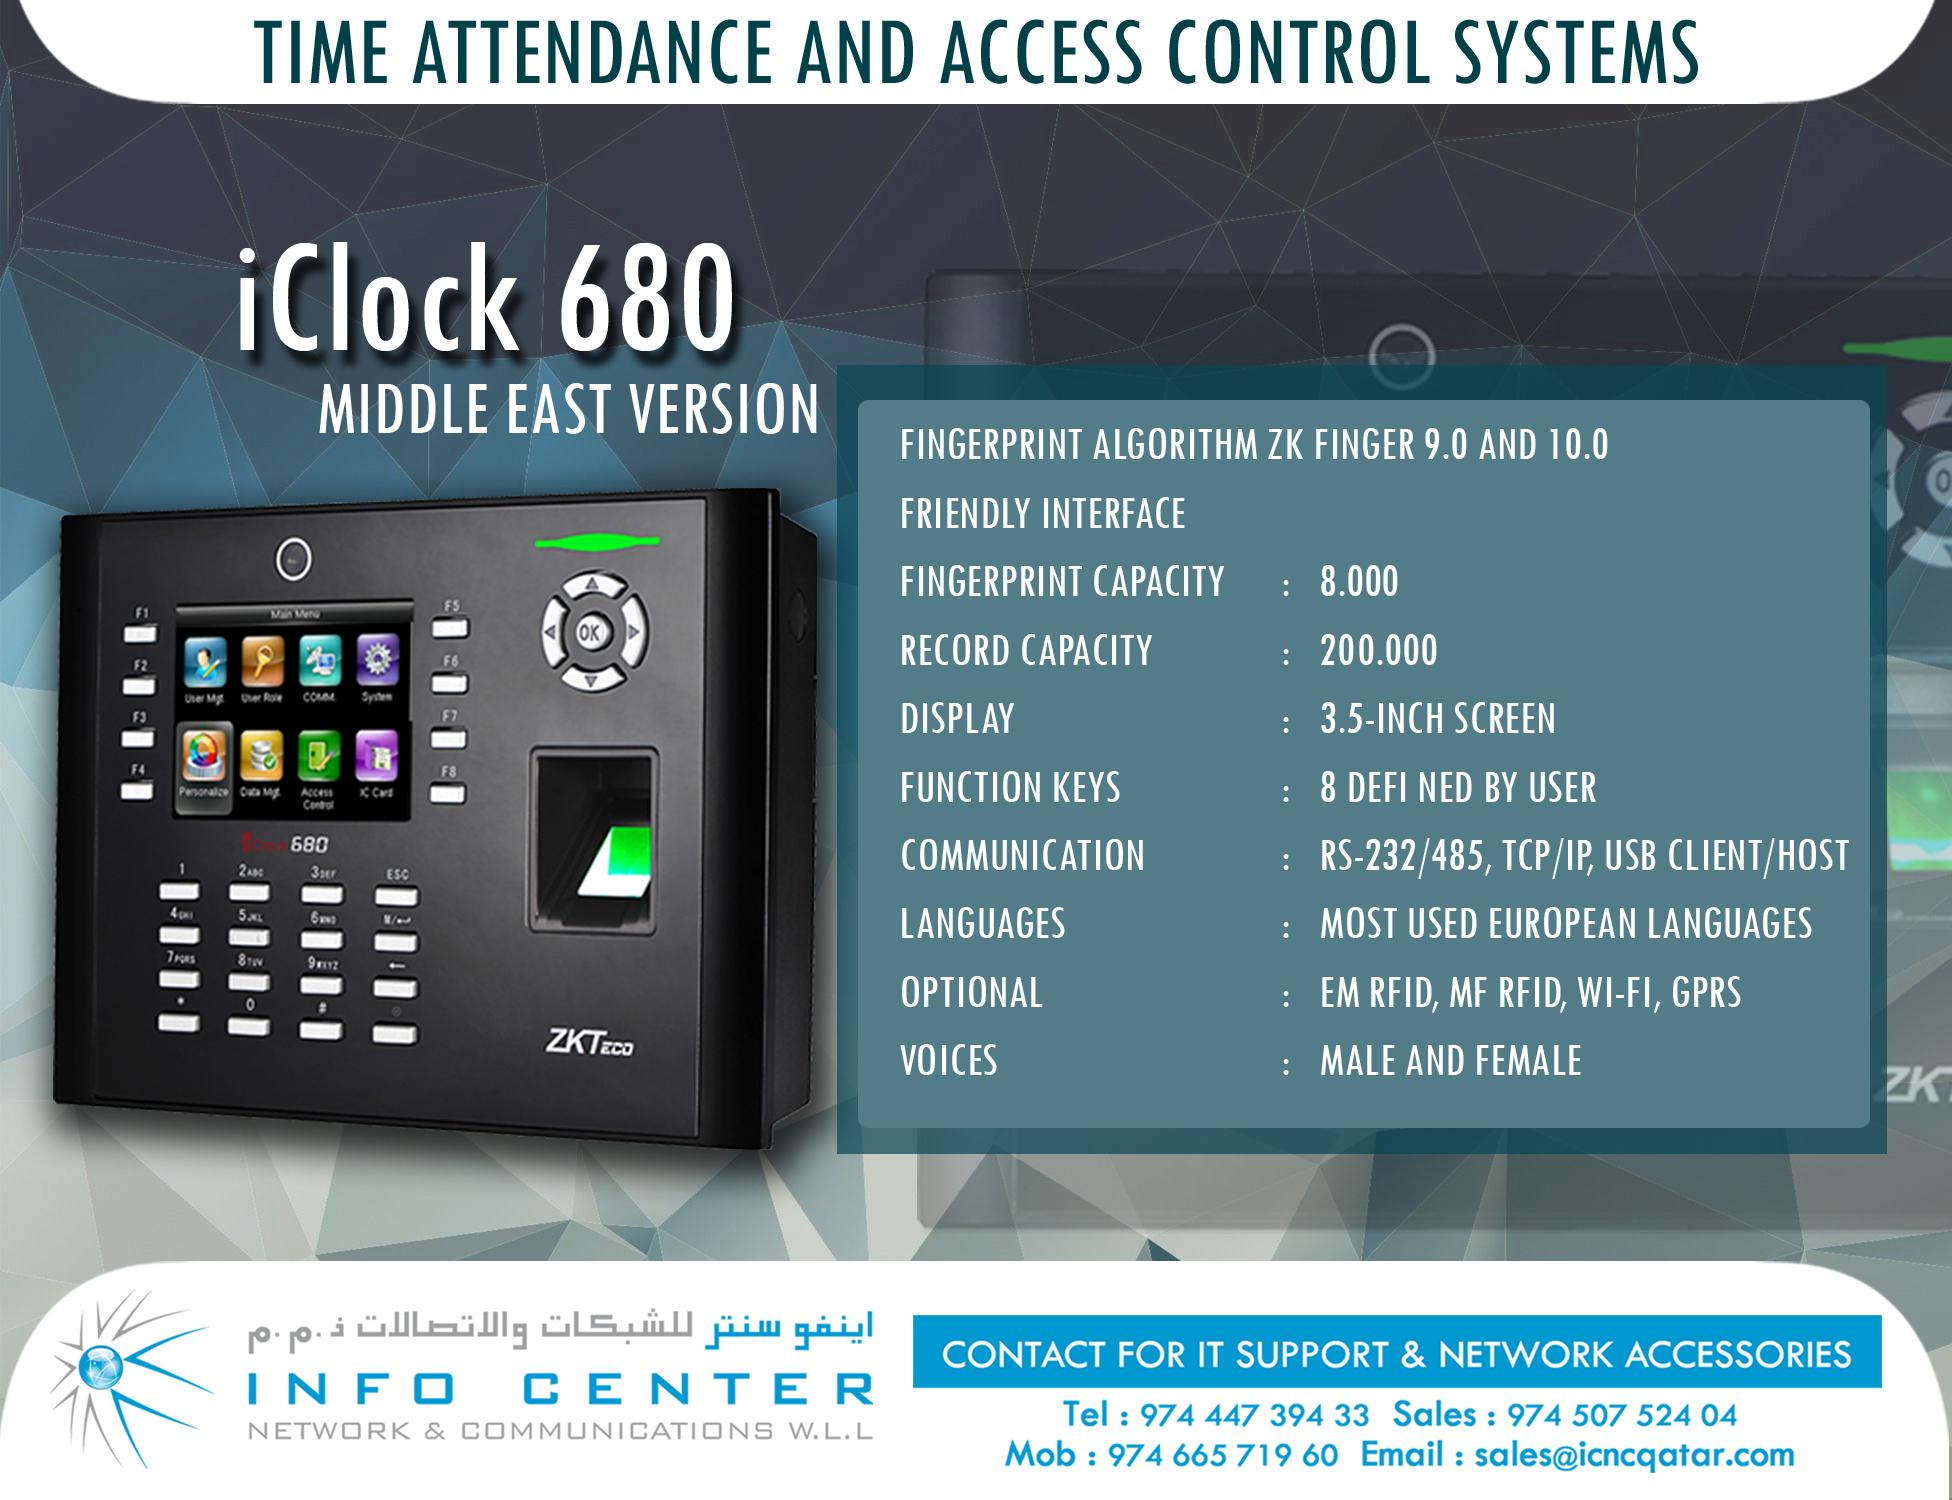 IT Solutions / WiFi/Time Attendance / Access Contr